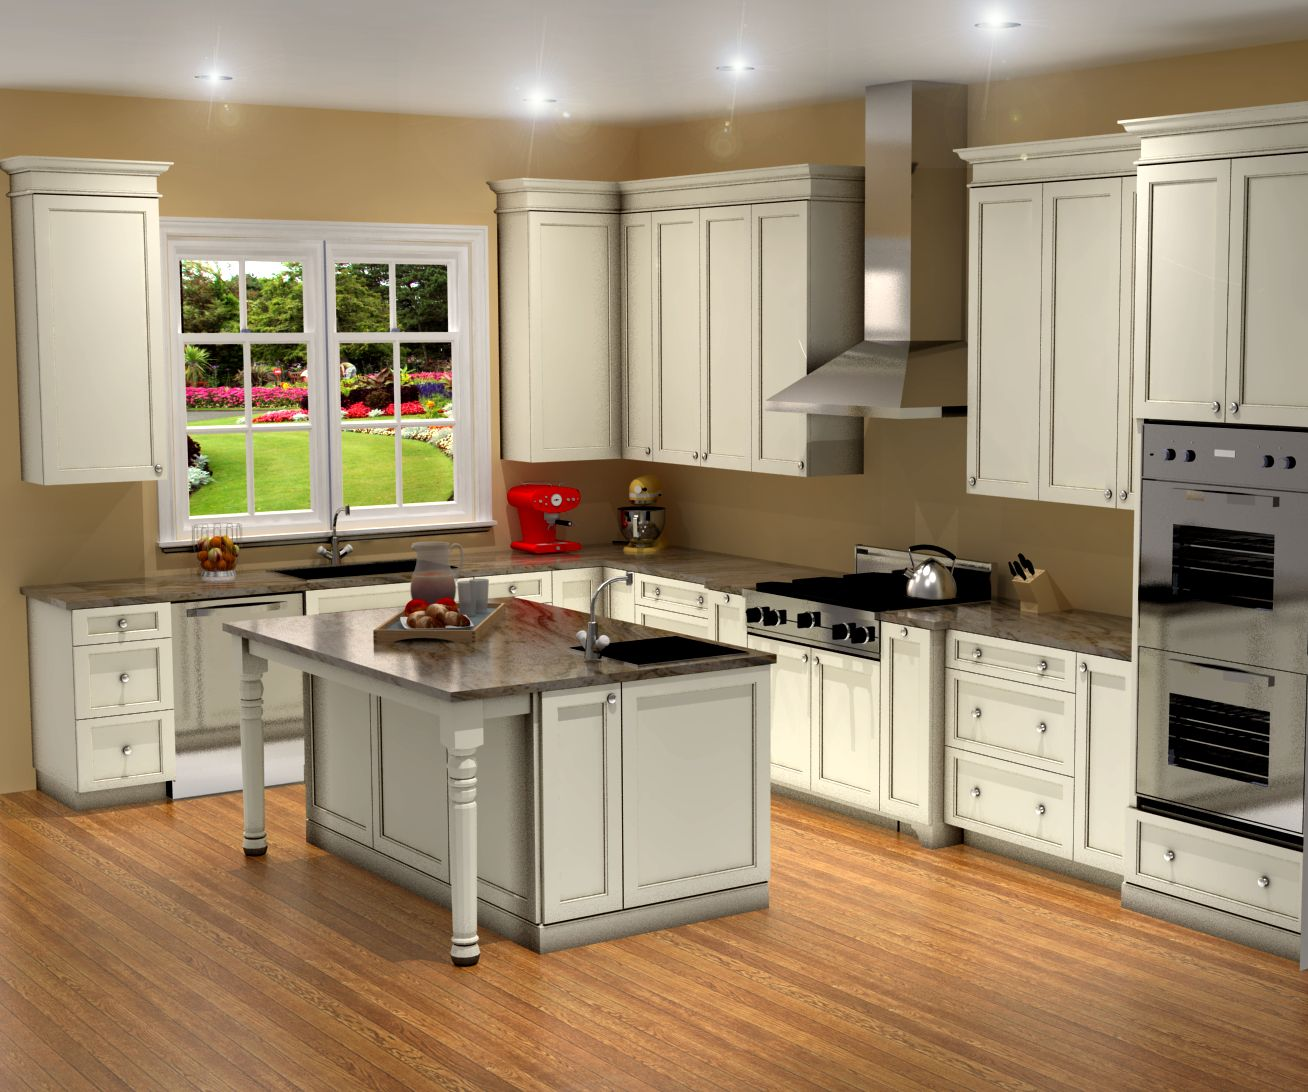 Traditional white kitchen design 3d rendering nick miller design - Kitchen style ...